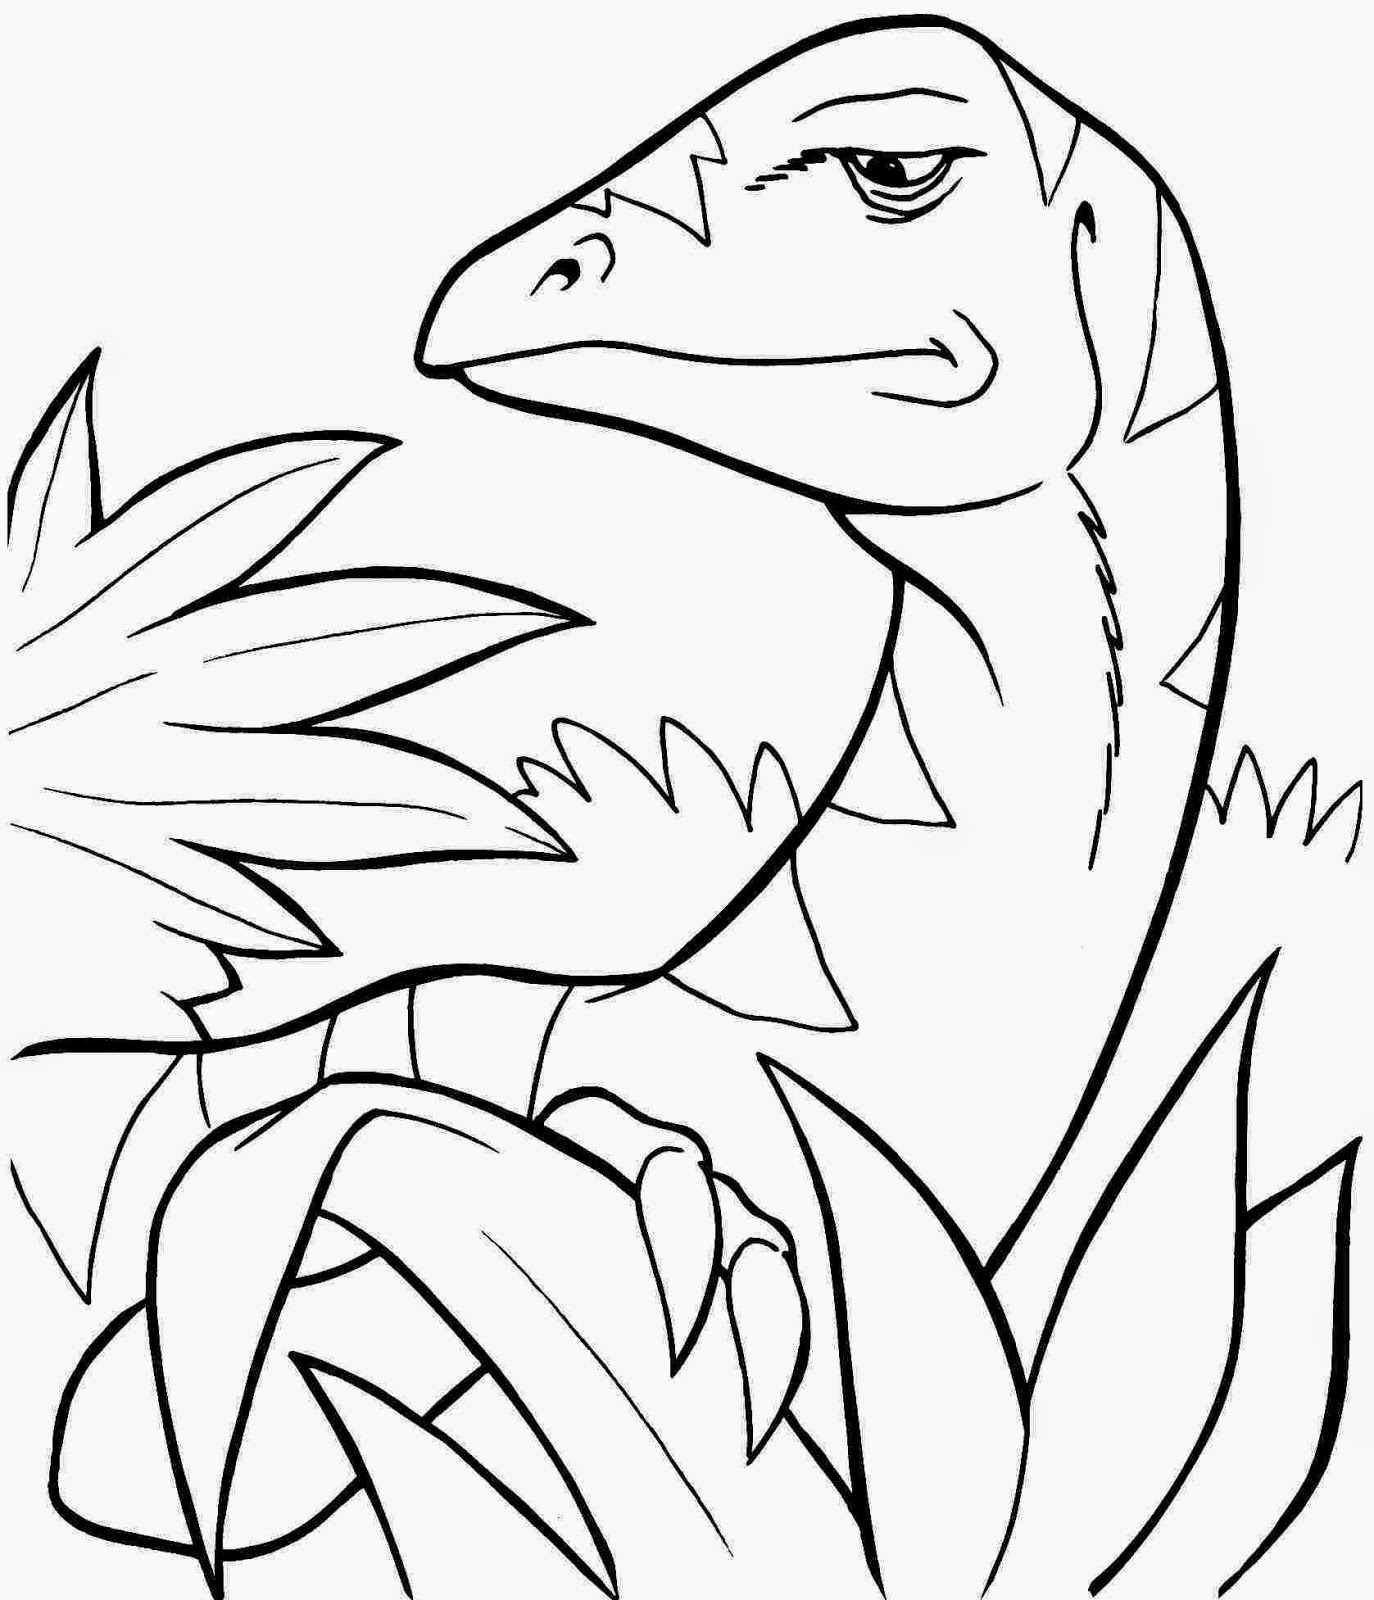 pictures of dinosaurs to print dinosaurs coloring pages collection free coloring sheets dinosaurs of to print pictures